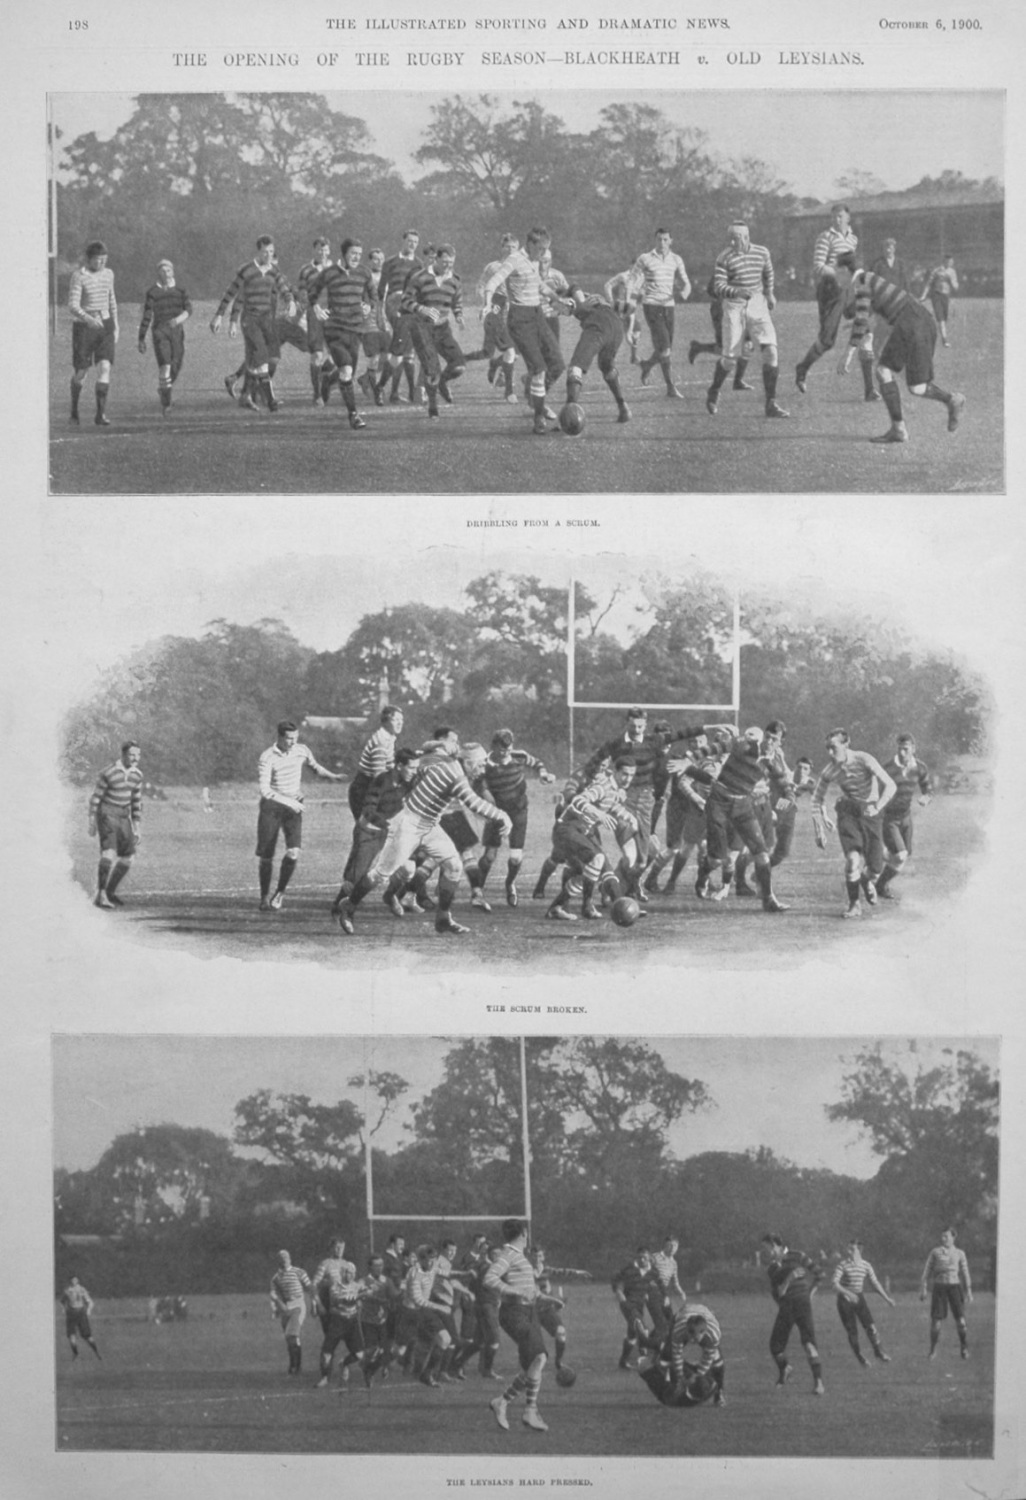 The Opening of the Rugby Season - Blackheath v. Old Leysians. 1900